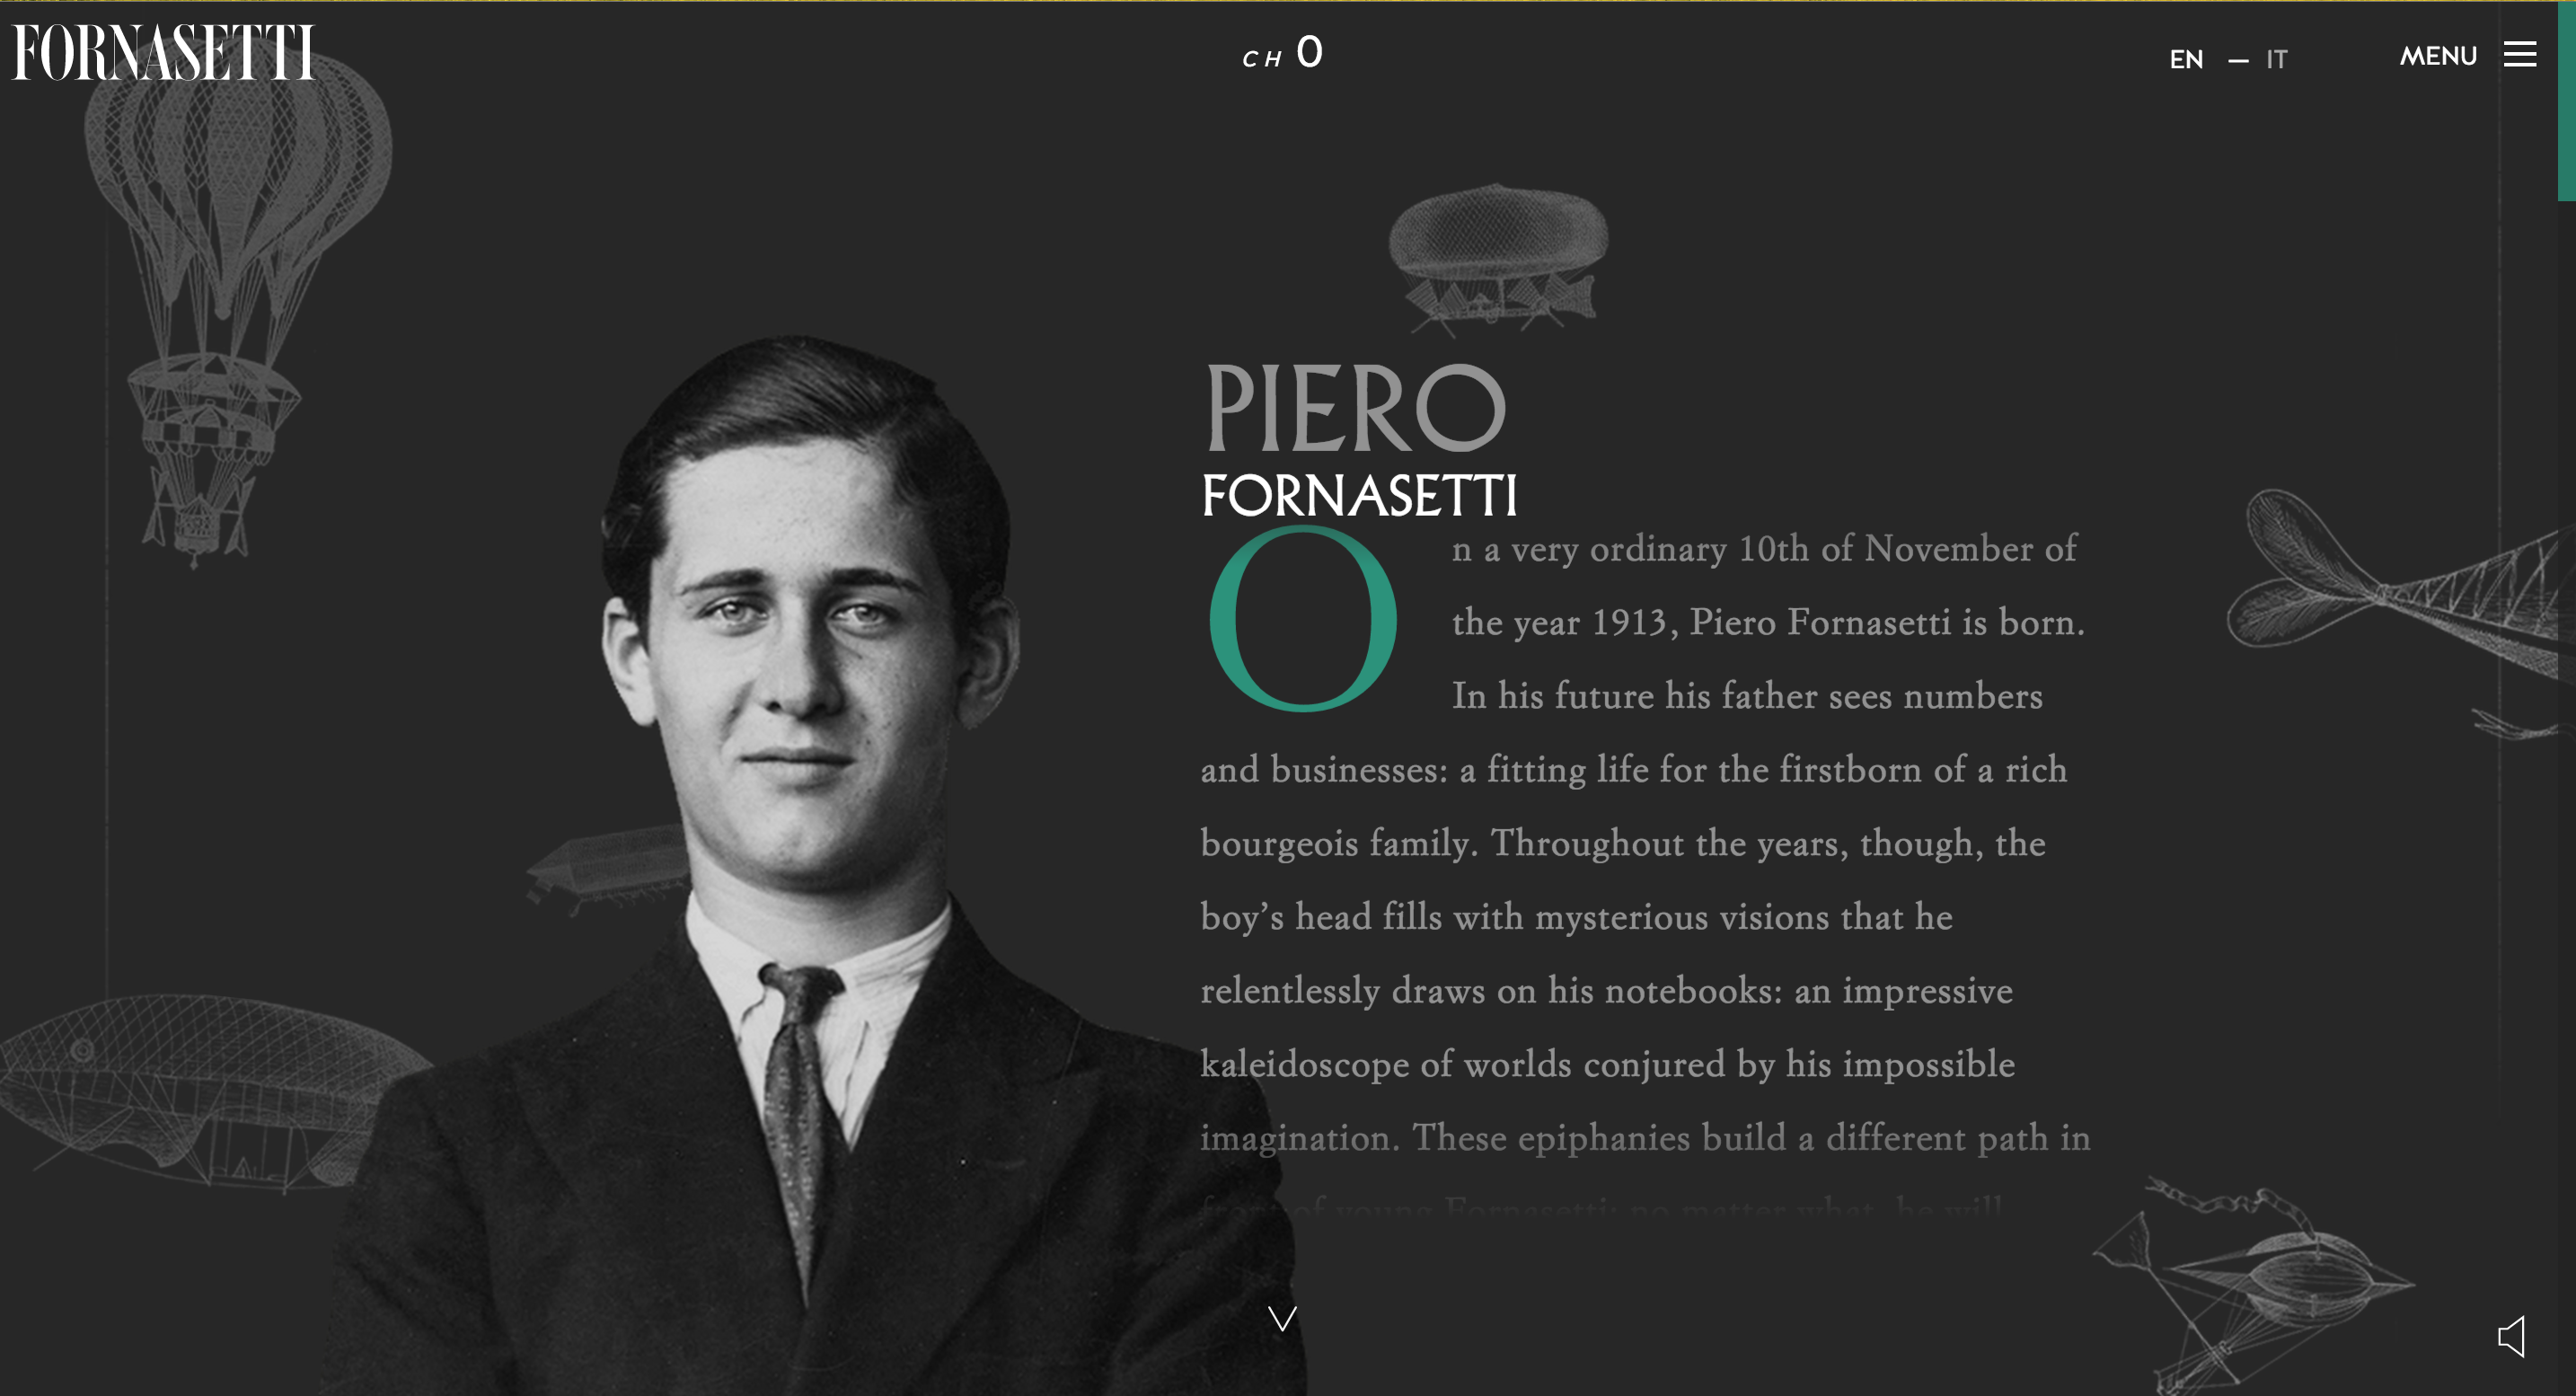 A beautiful website for the artist Pierro Fornasetti